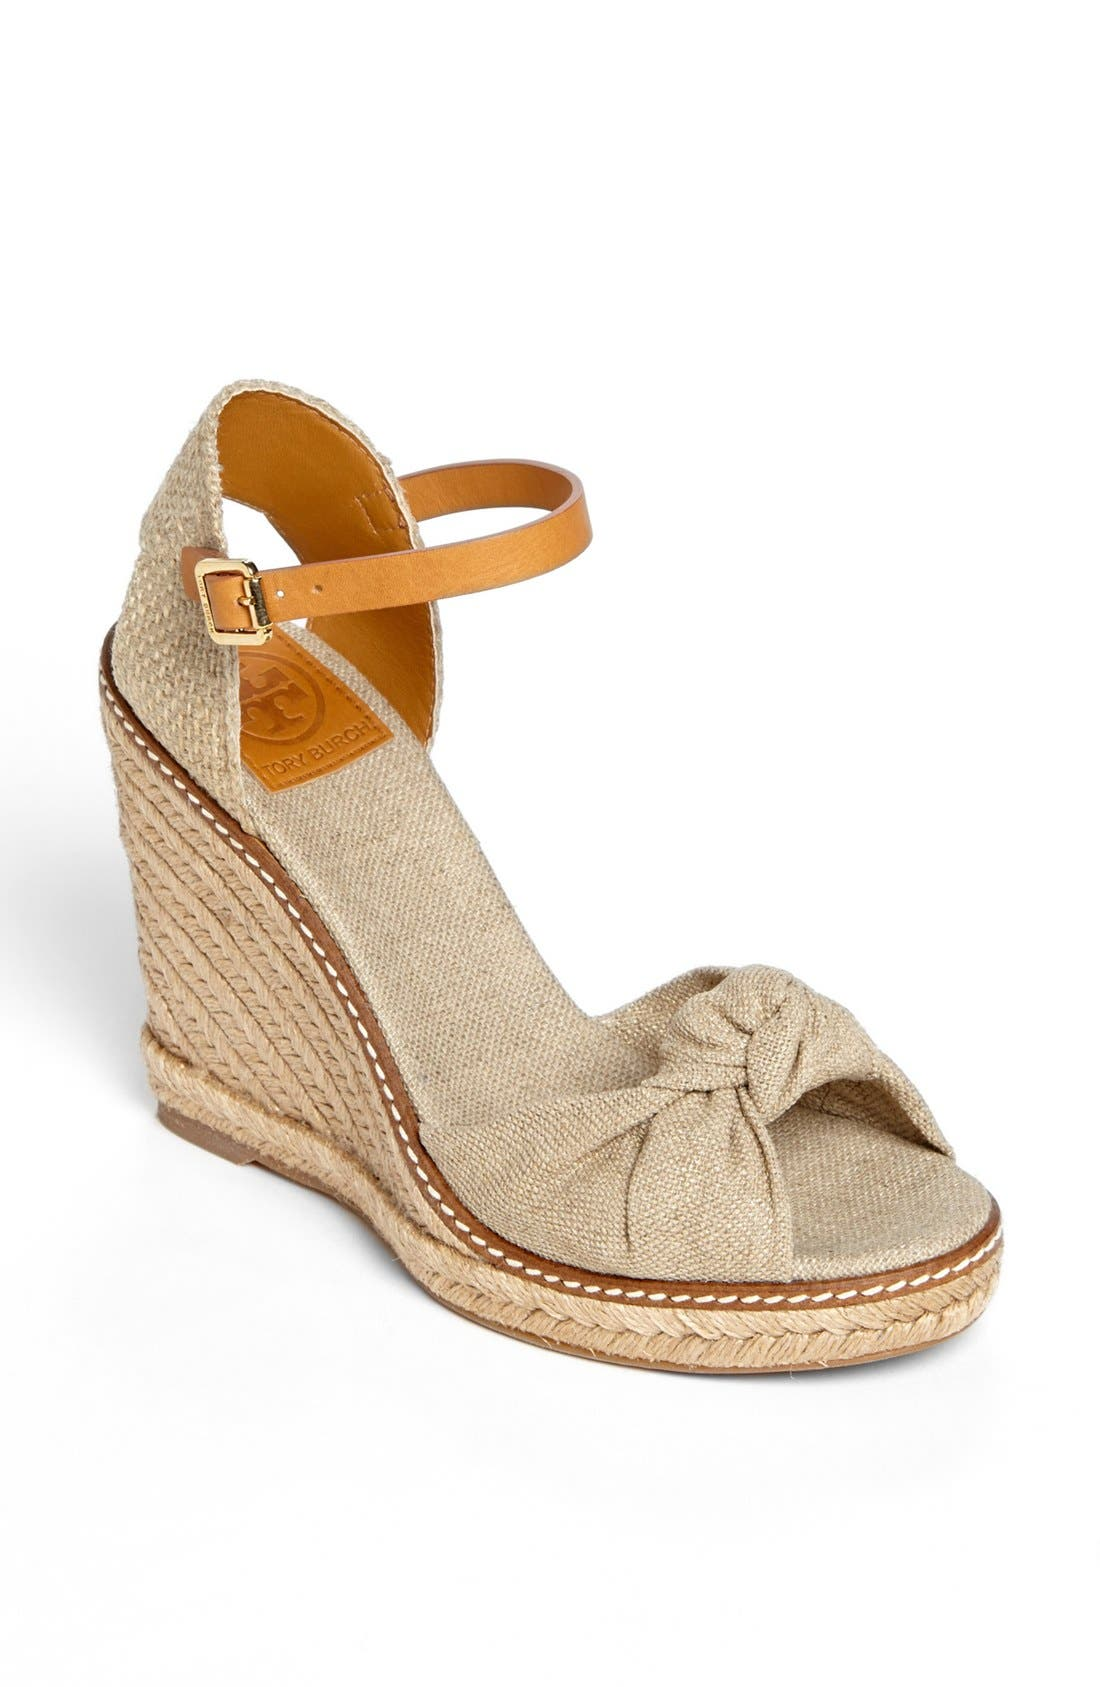 Main Image - Tory Burch 'Macy' Leather Wedge Espadrille Sandal